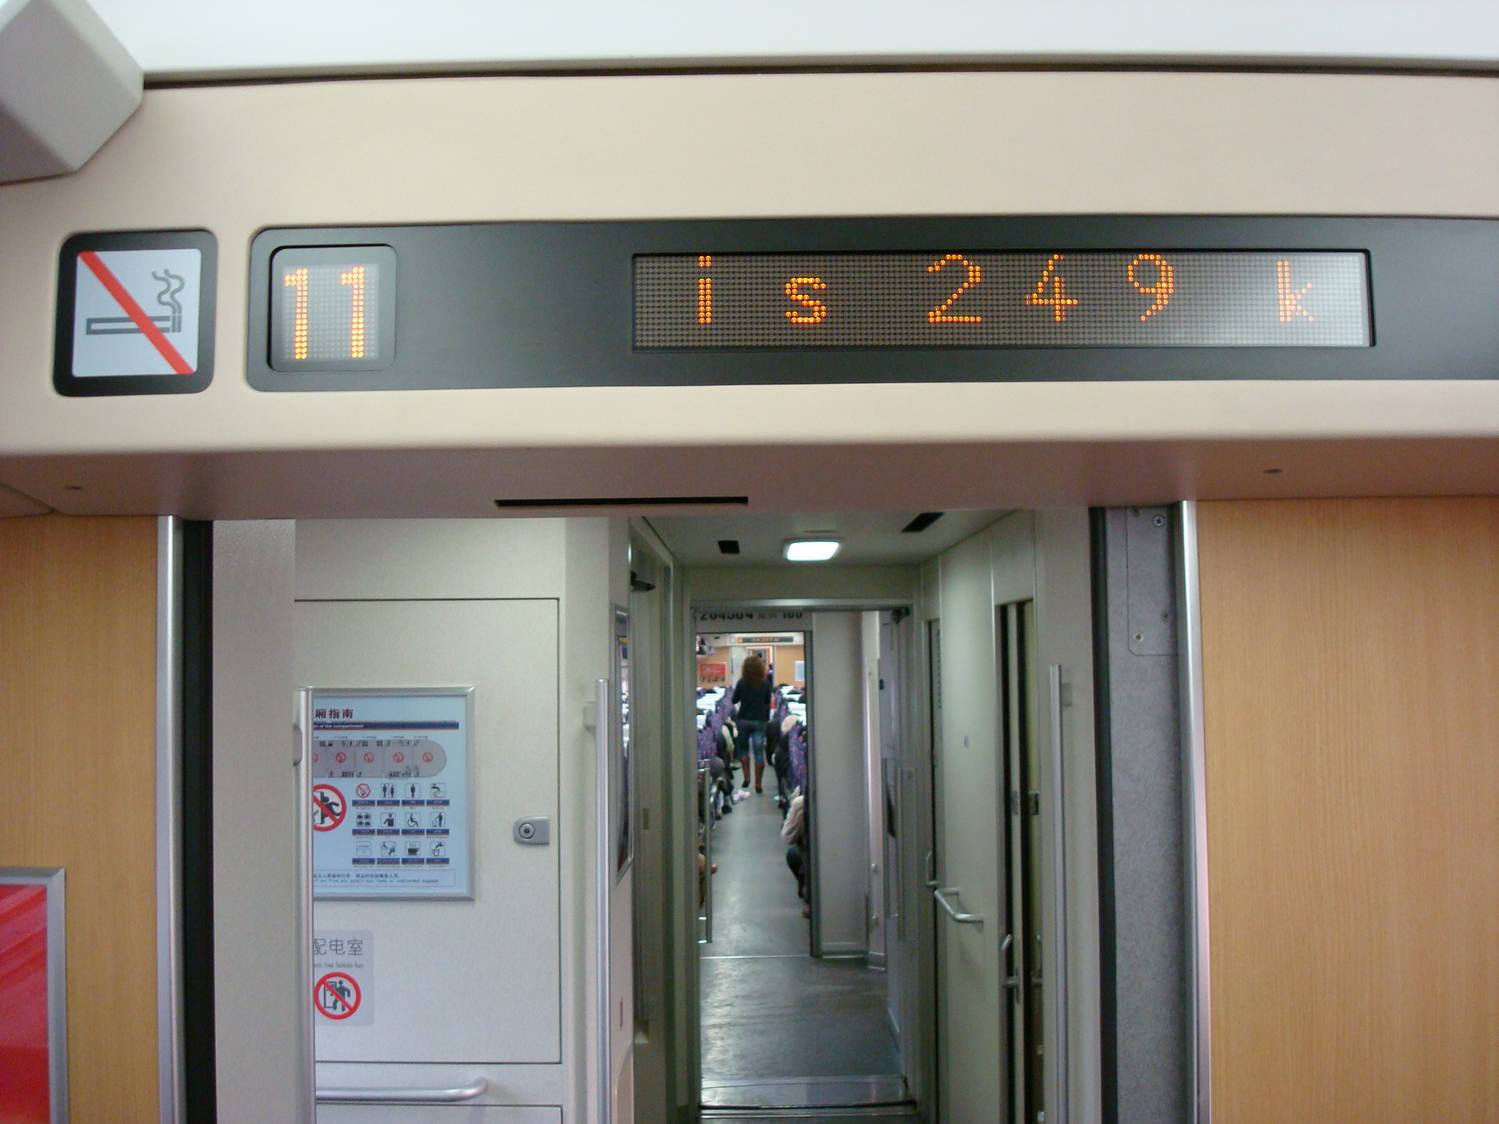 Shanghai to Nanjing fast train speed indicating 249 km/hr